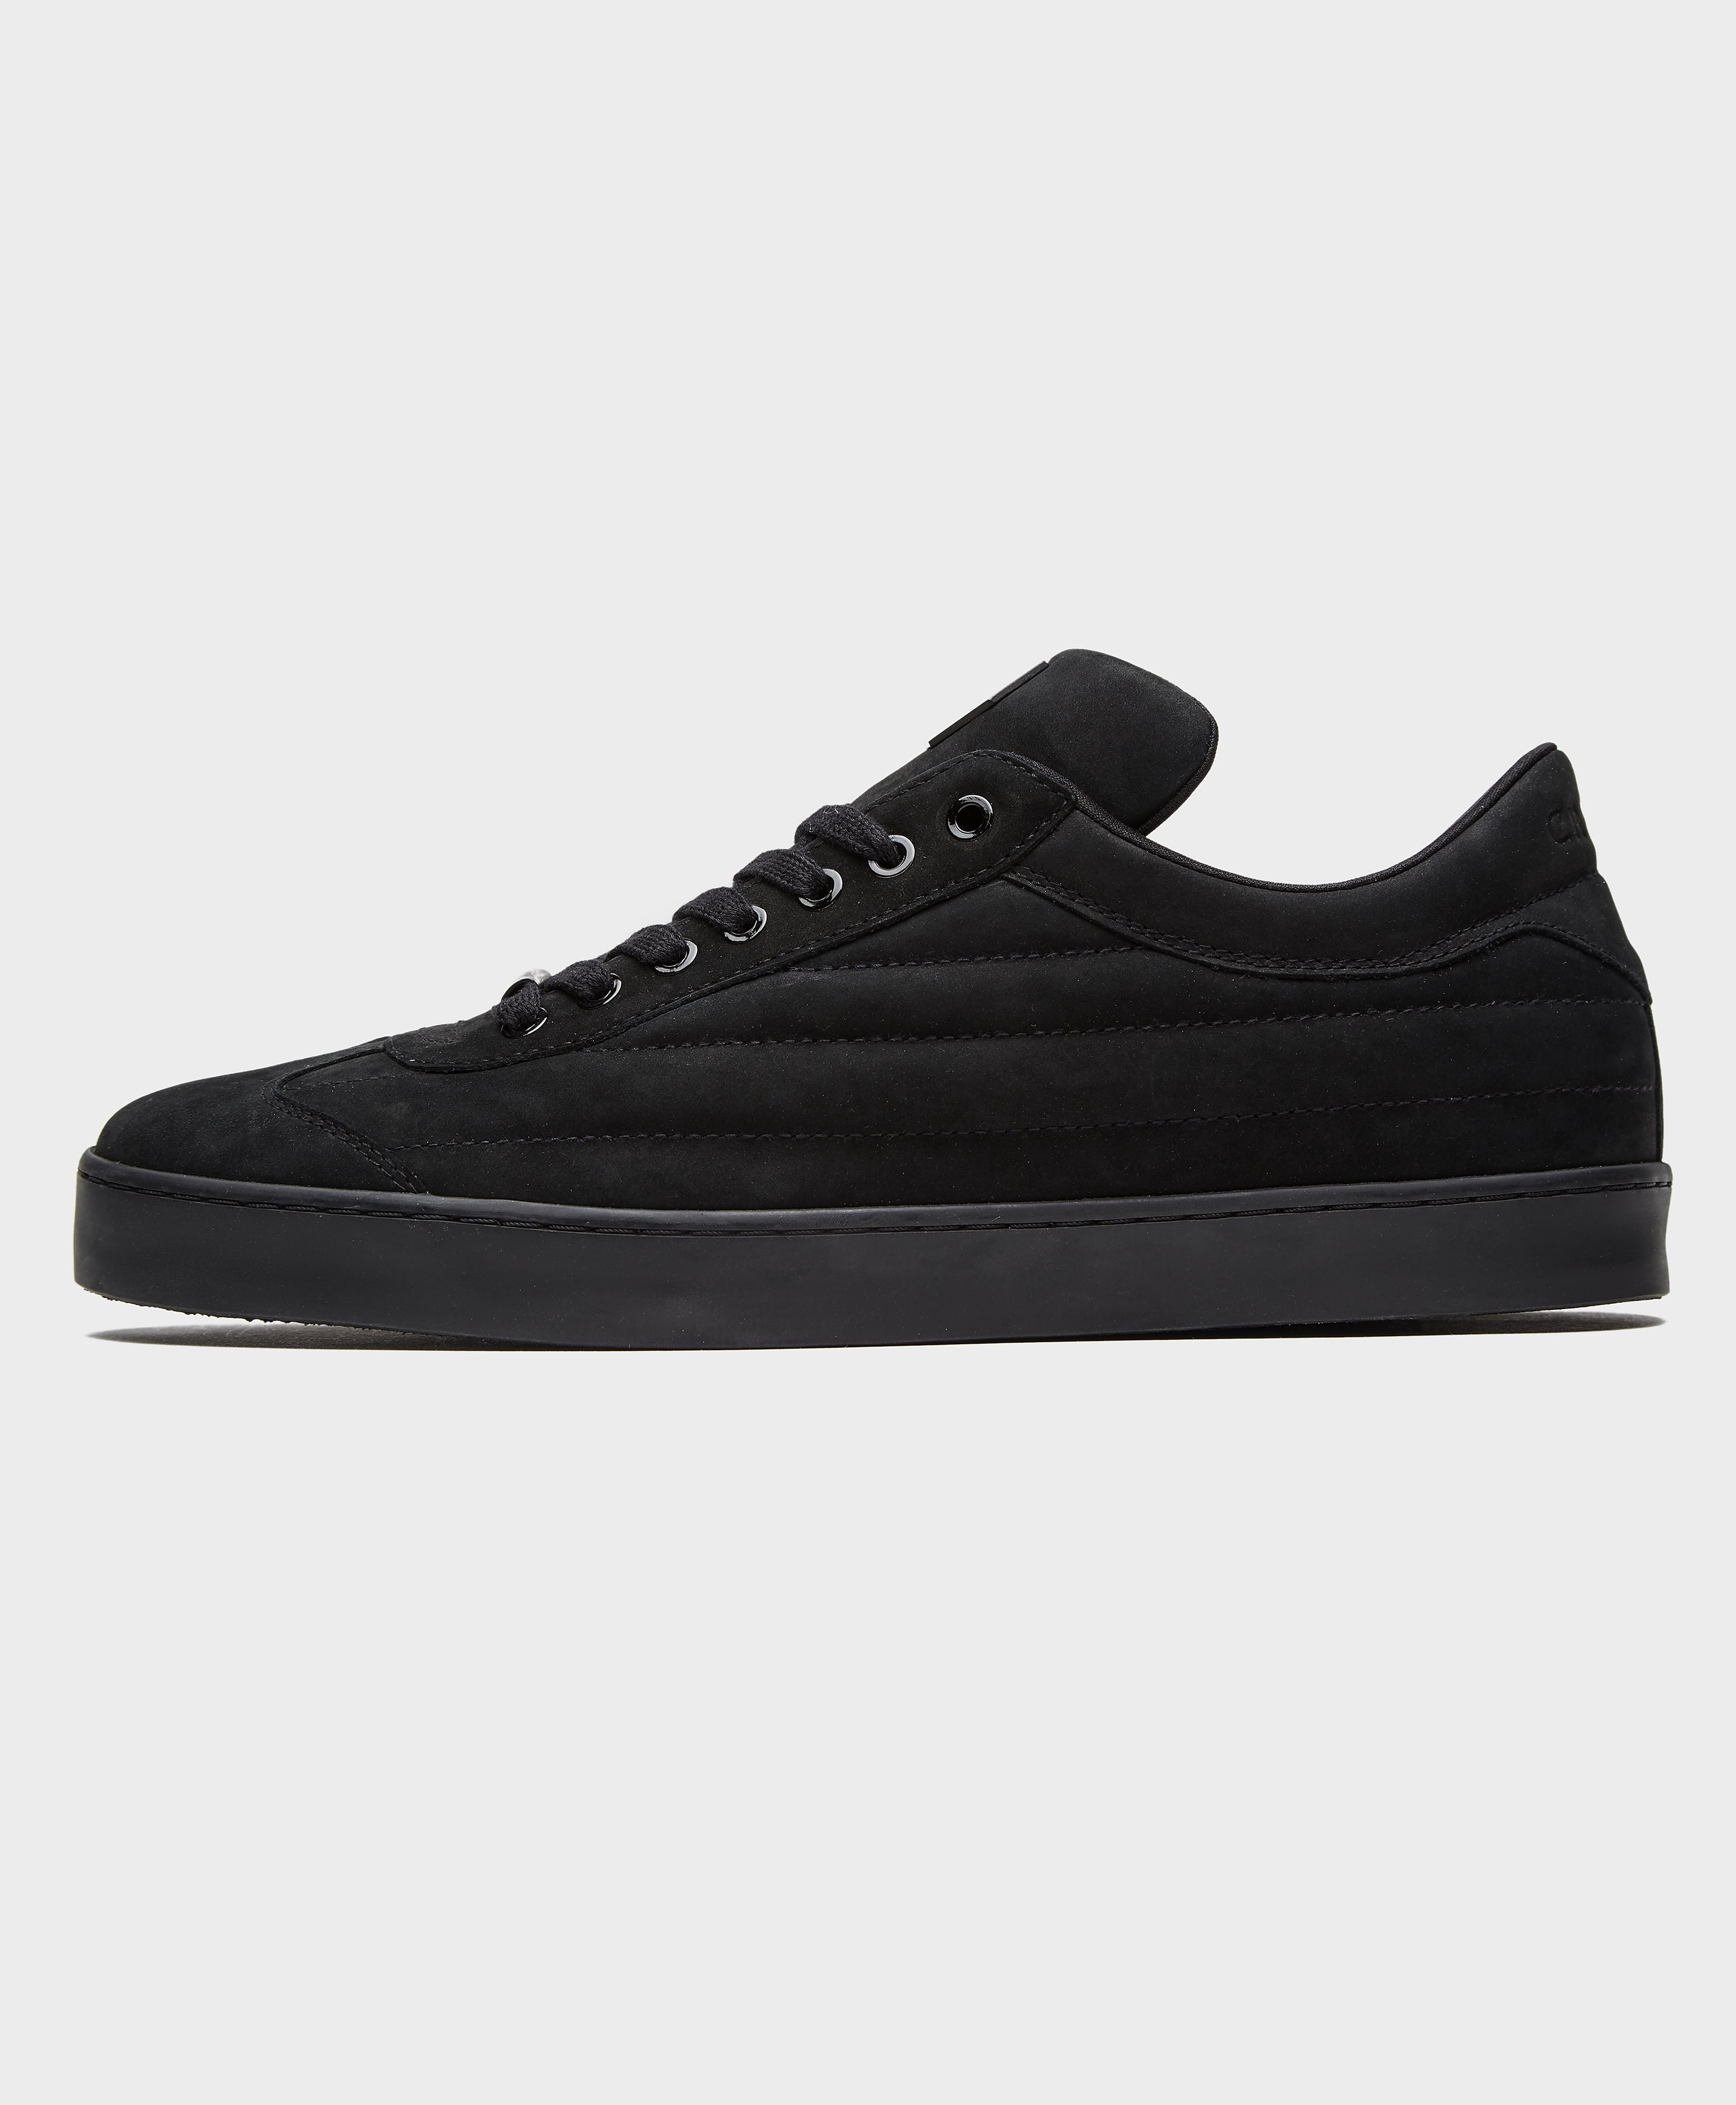 Cruyff Rebel Suede